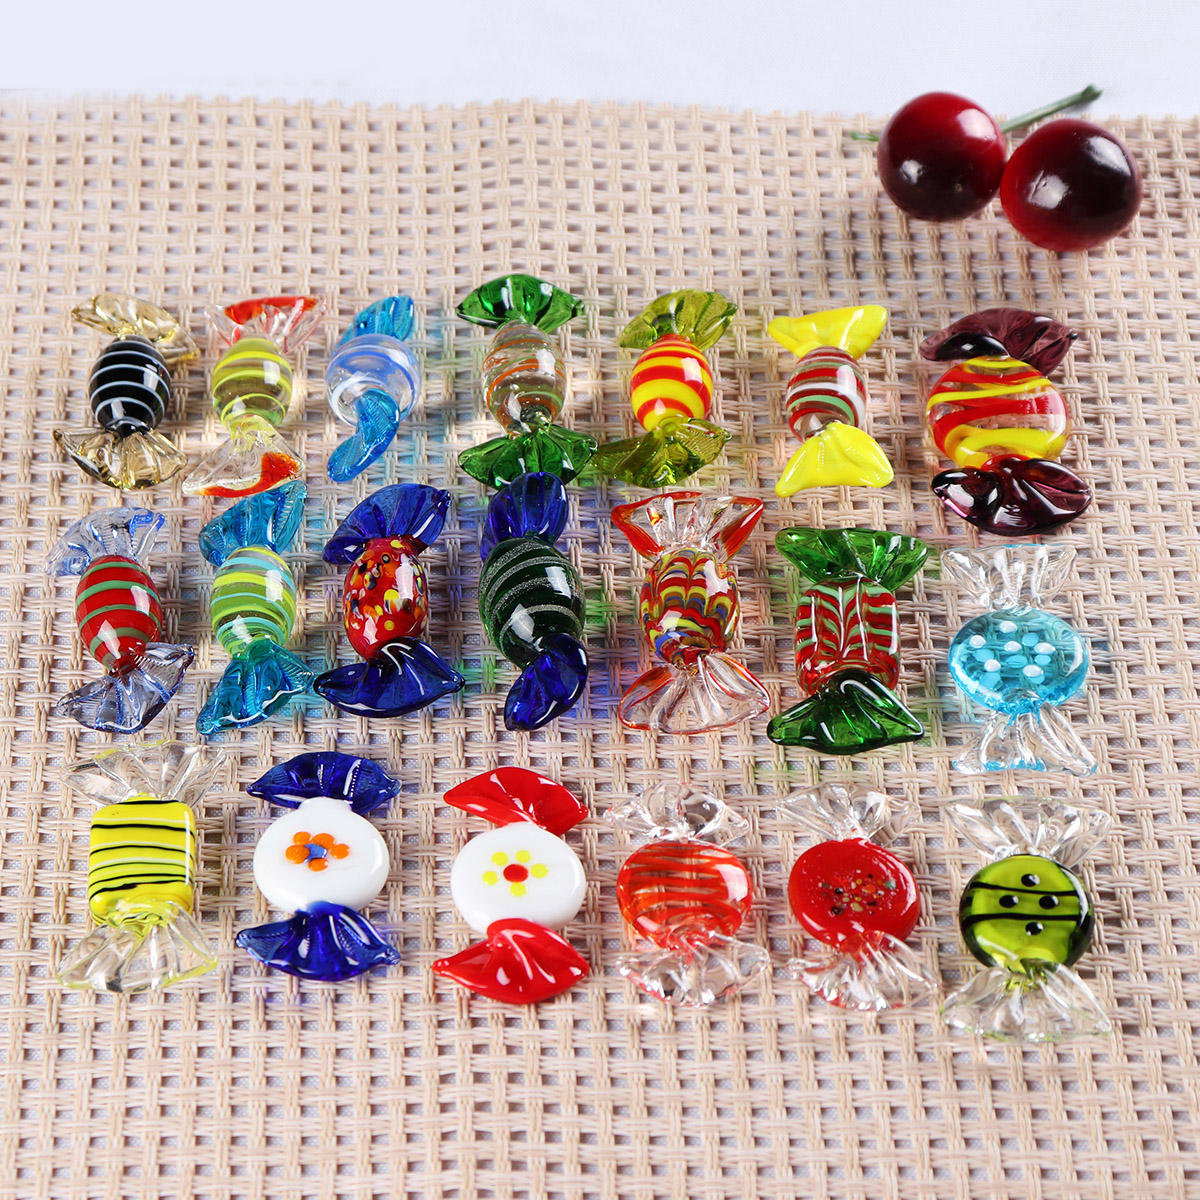 20Pcs/Set Vintage Glass Sweets Wedding Party Candy Christmas Decorations Gift COD